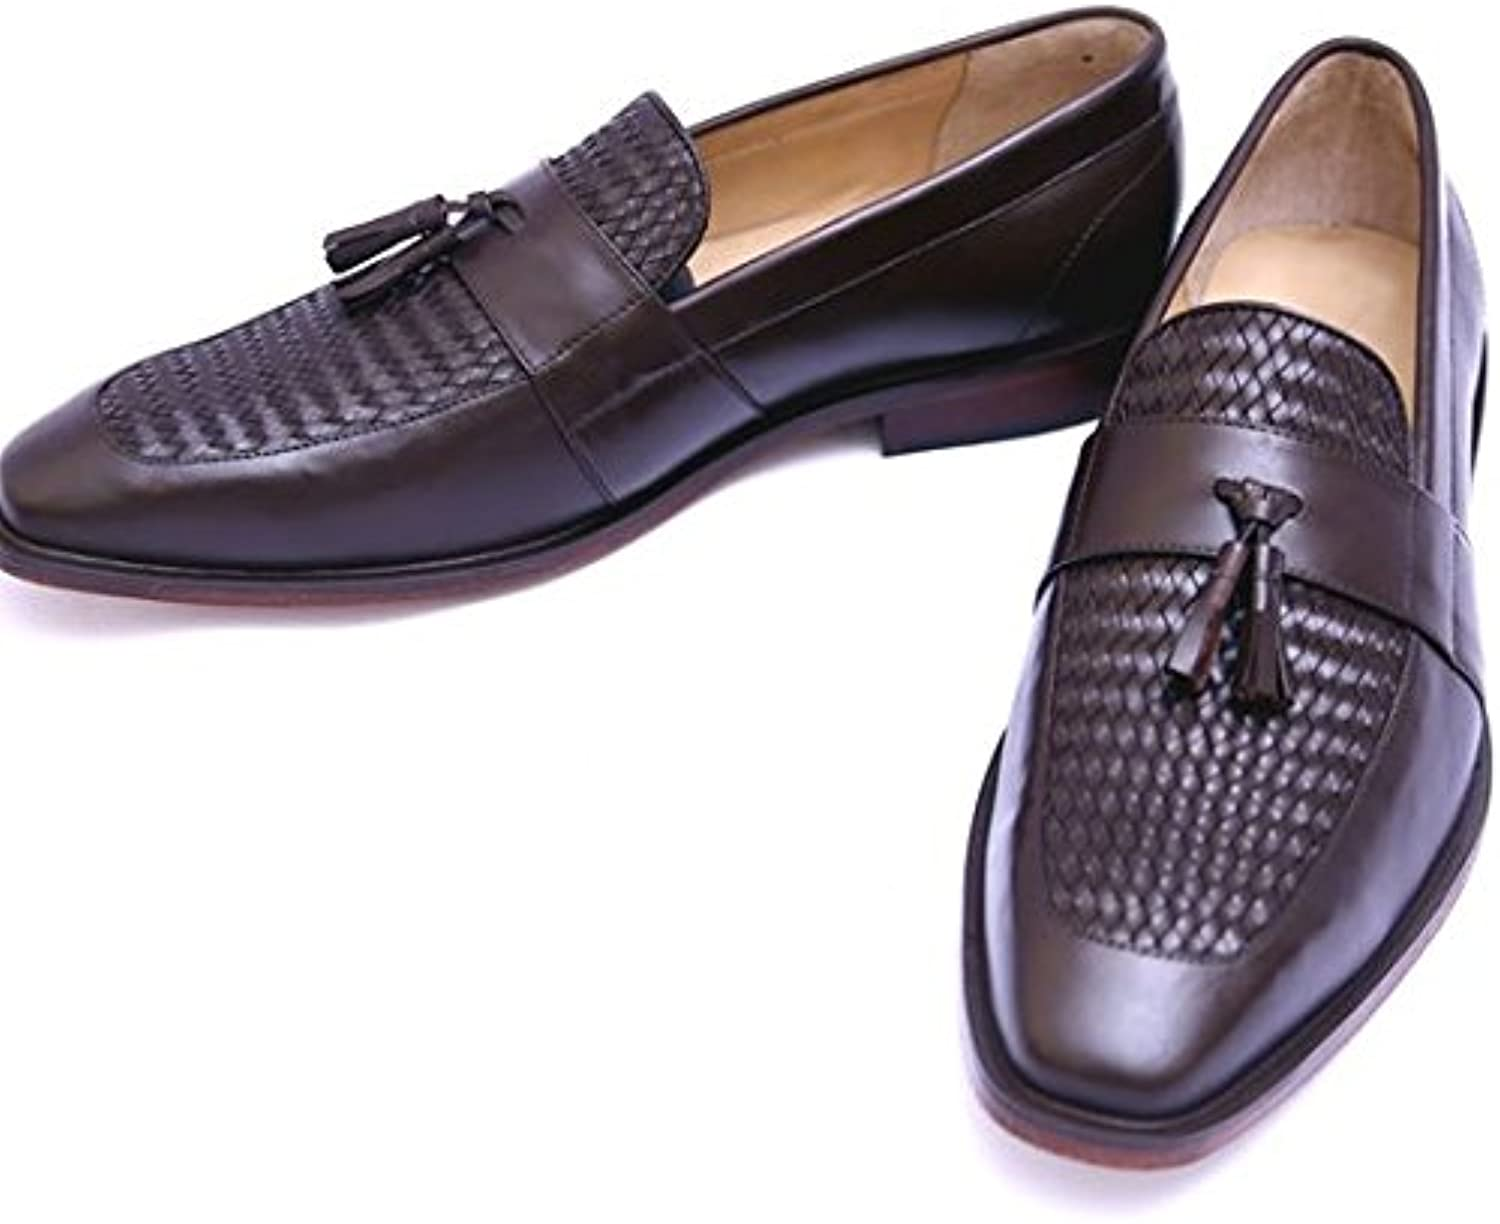 EIGHTYEIGHTSTEPS Hand Made Leather shoes in Calf Leather Slip ON shoes Upper Woven Style Brown color Art NO. 002-16